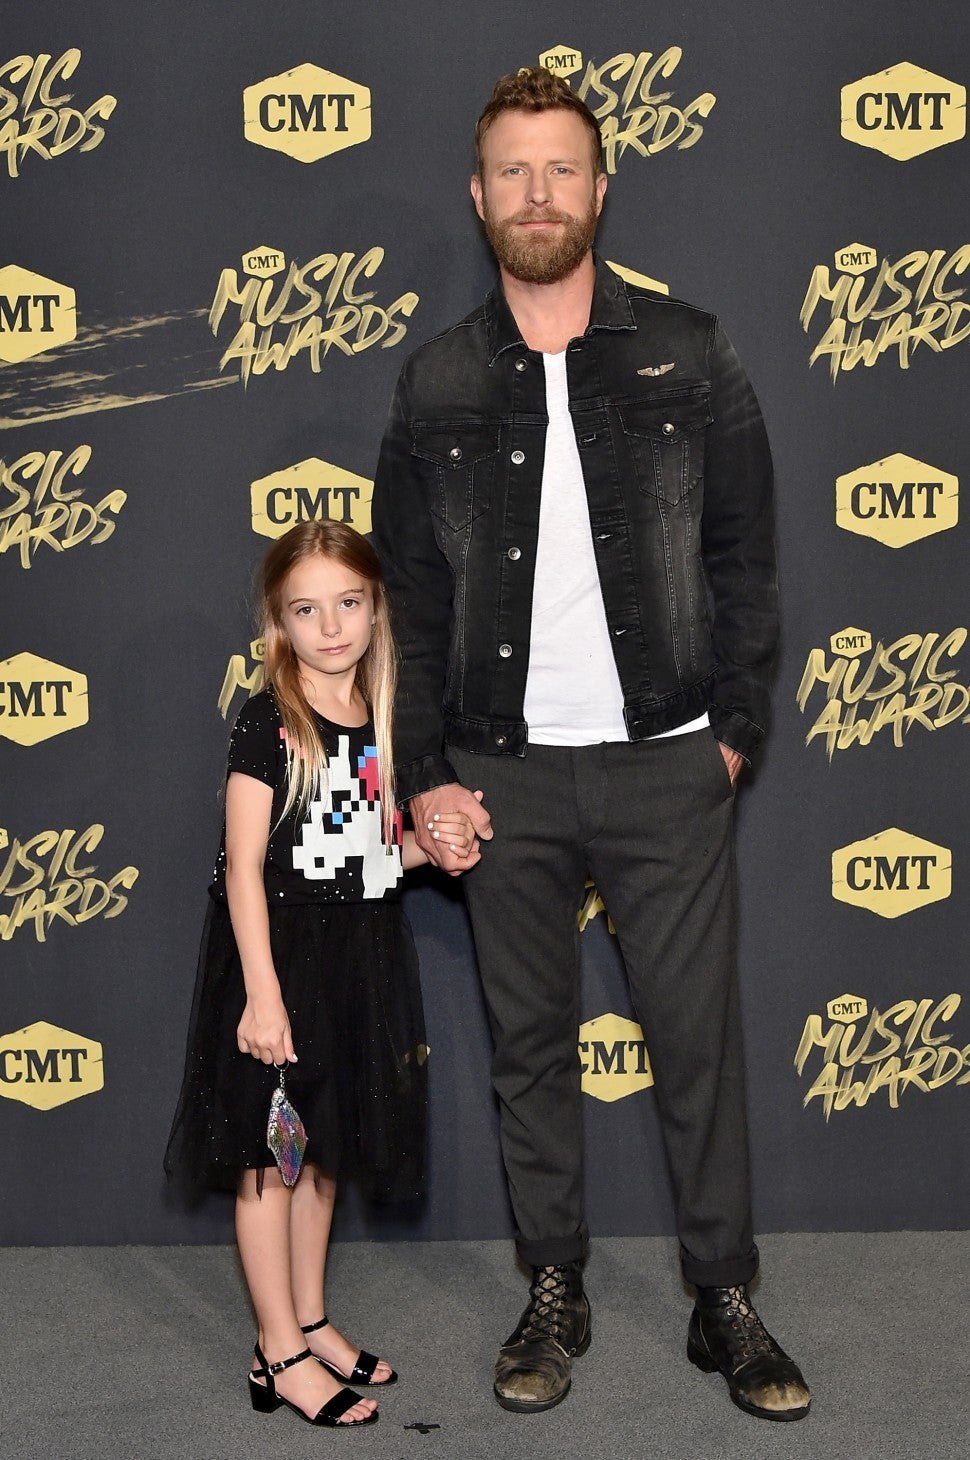 Dierks Bentley and daughter Jordan at 2018 cmt music awards